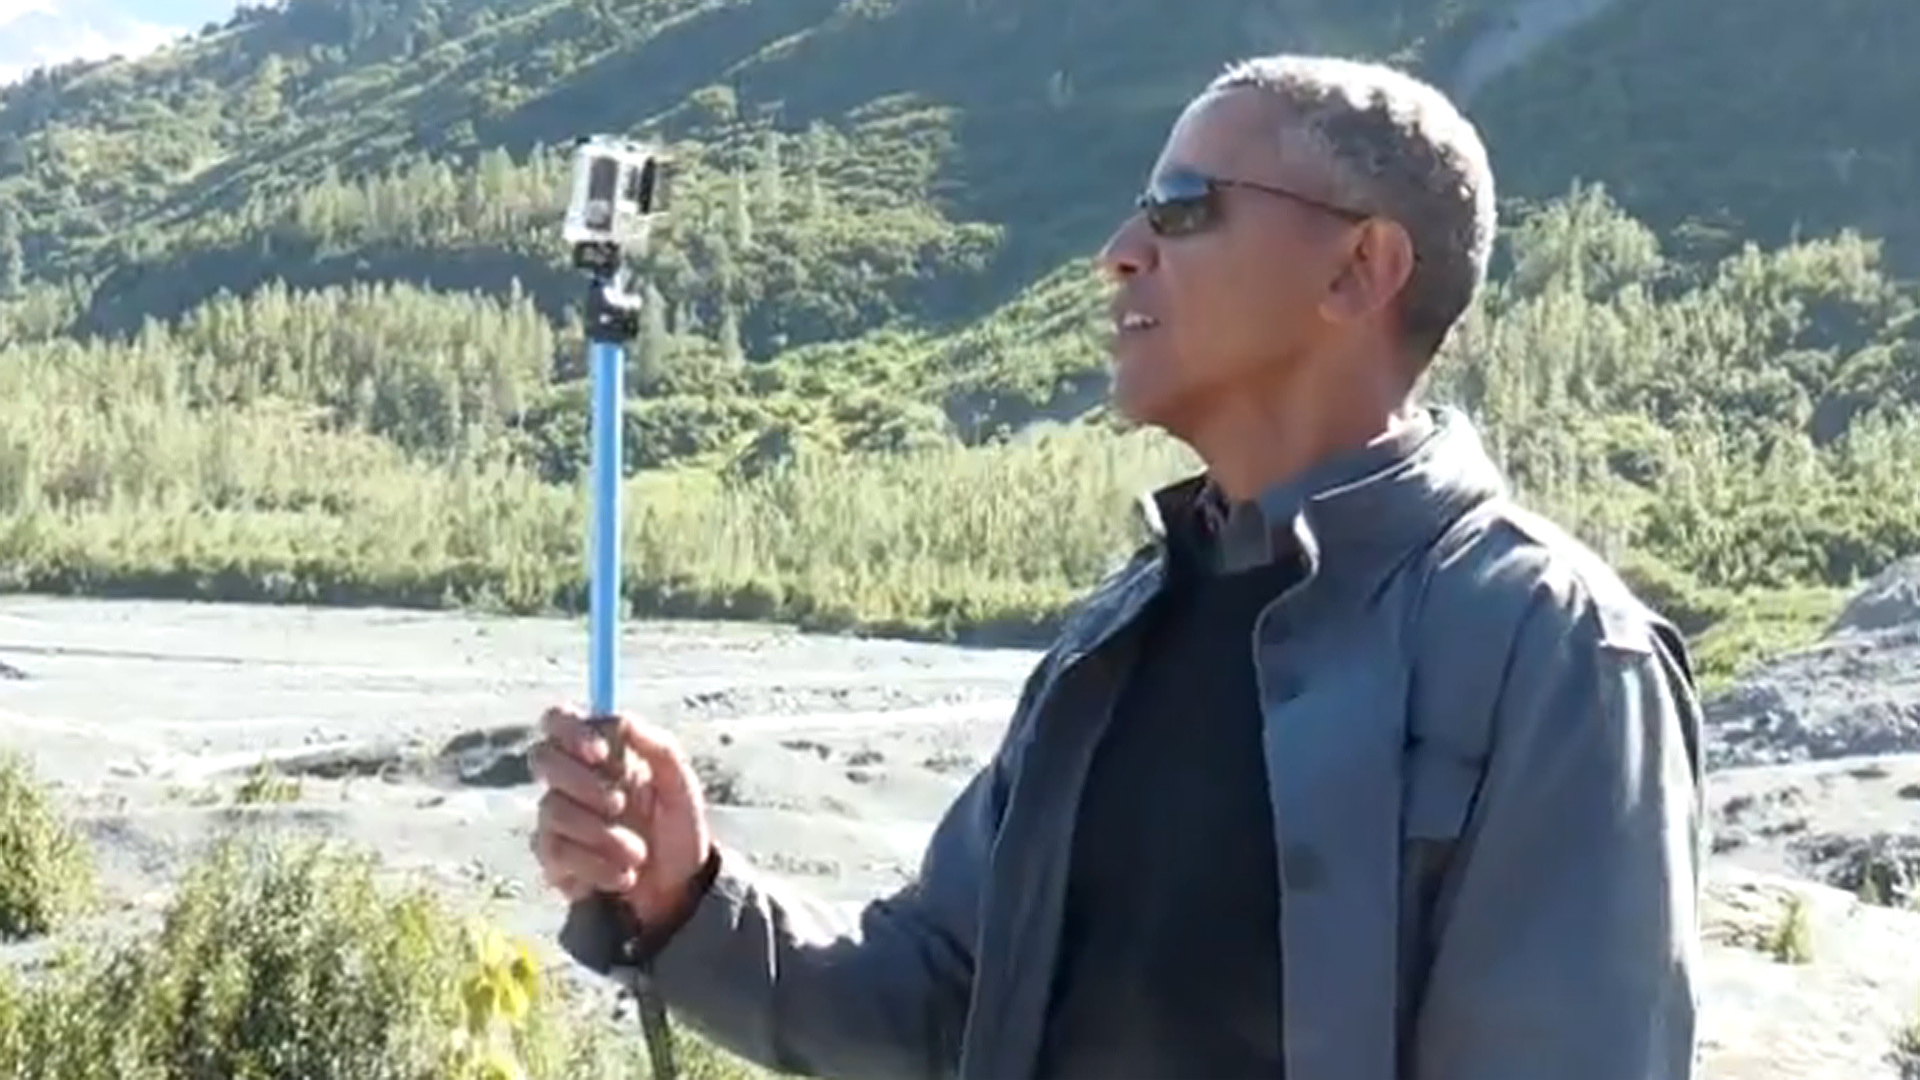 Obama Takes Selfies in Alaska to Share Message of Climate Change